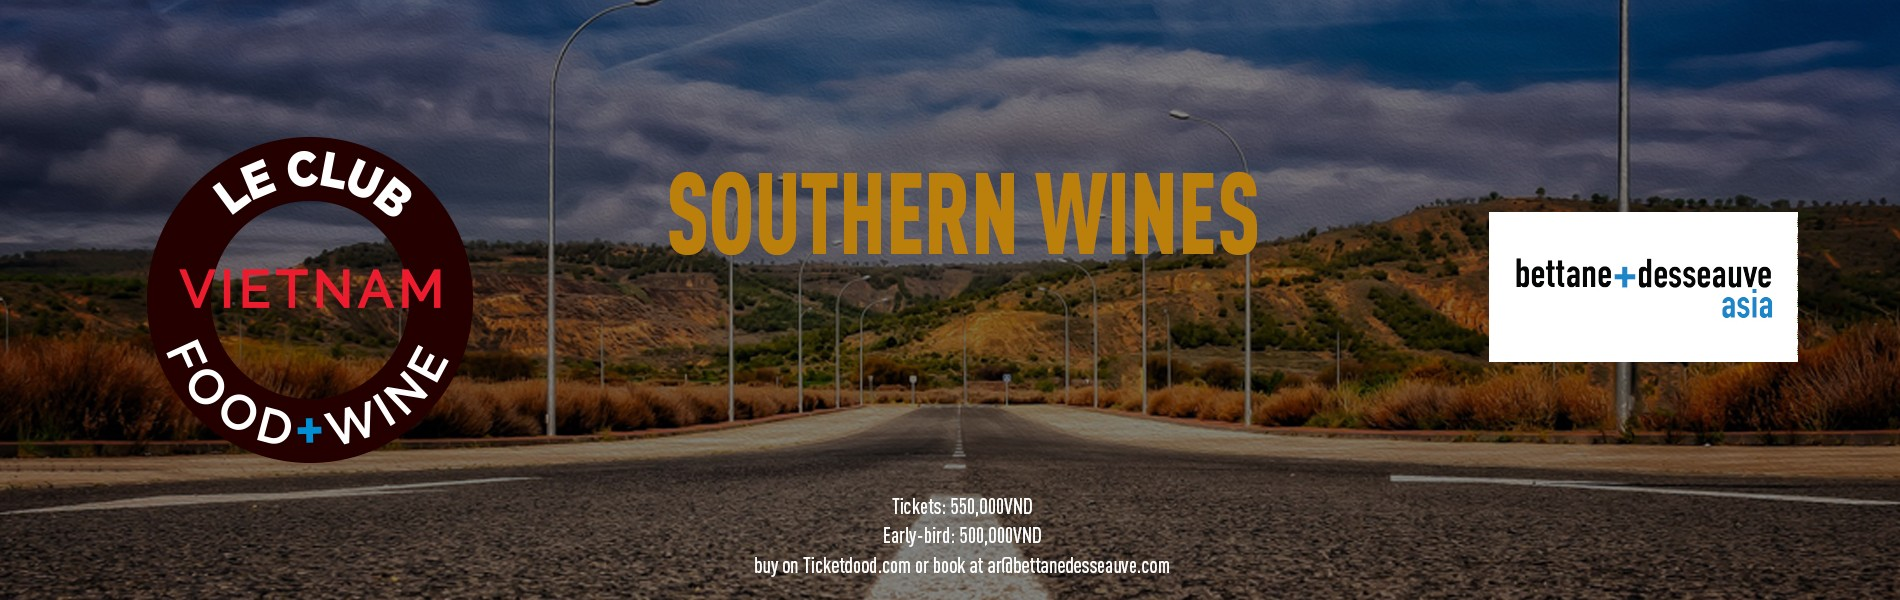 Le Club Food & Wine - Southern Wines